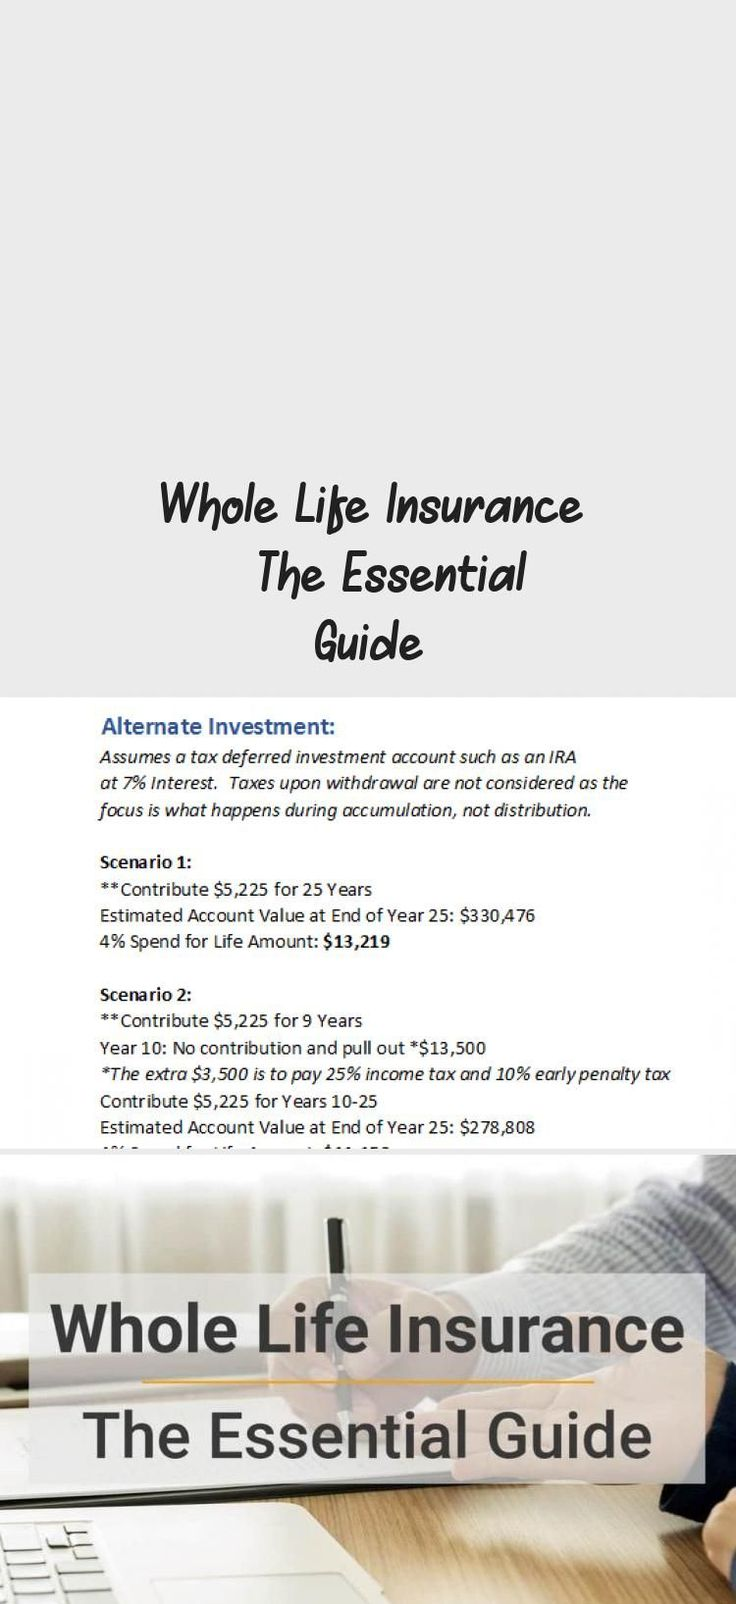 Whole Life Insurance Surpasses Term Life Although It Causes Most